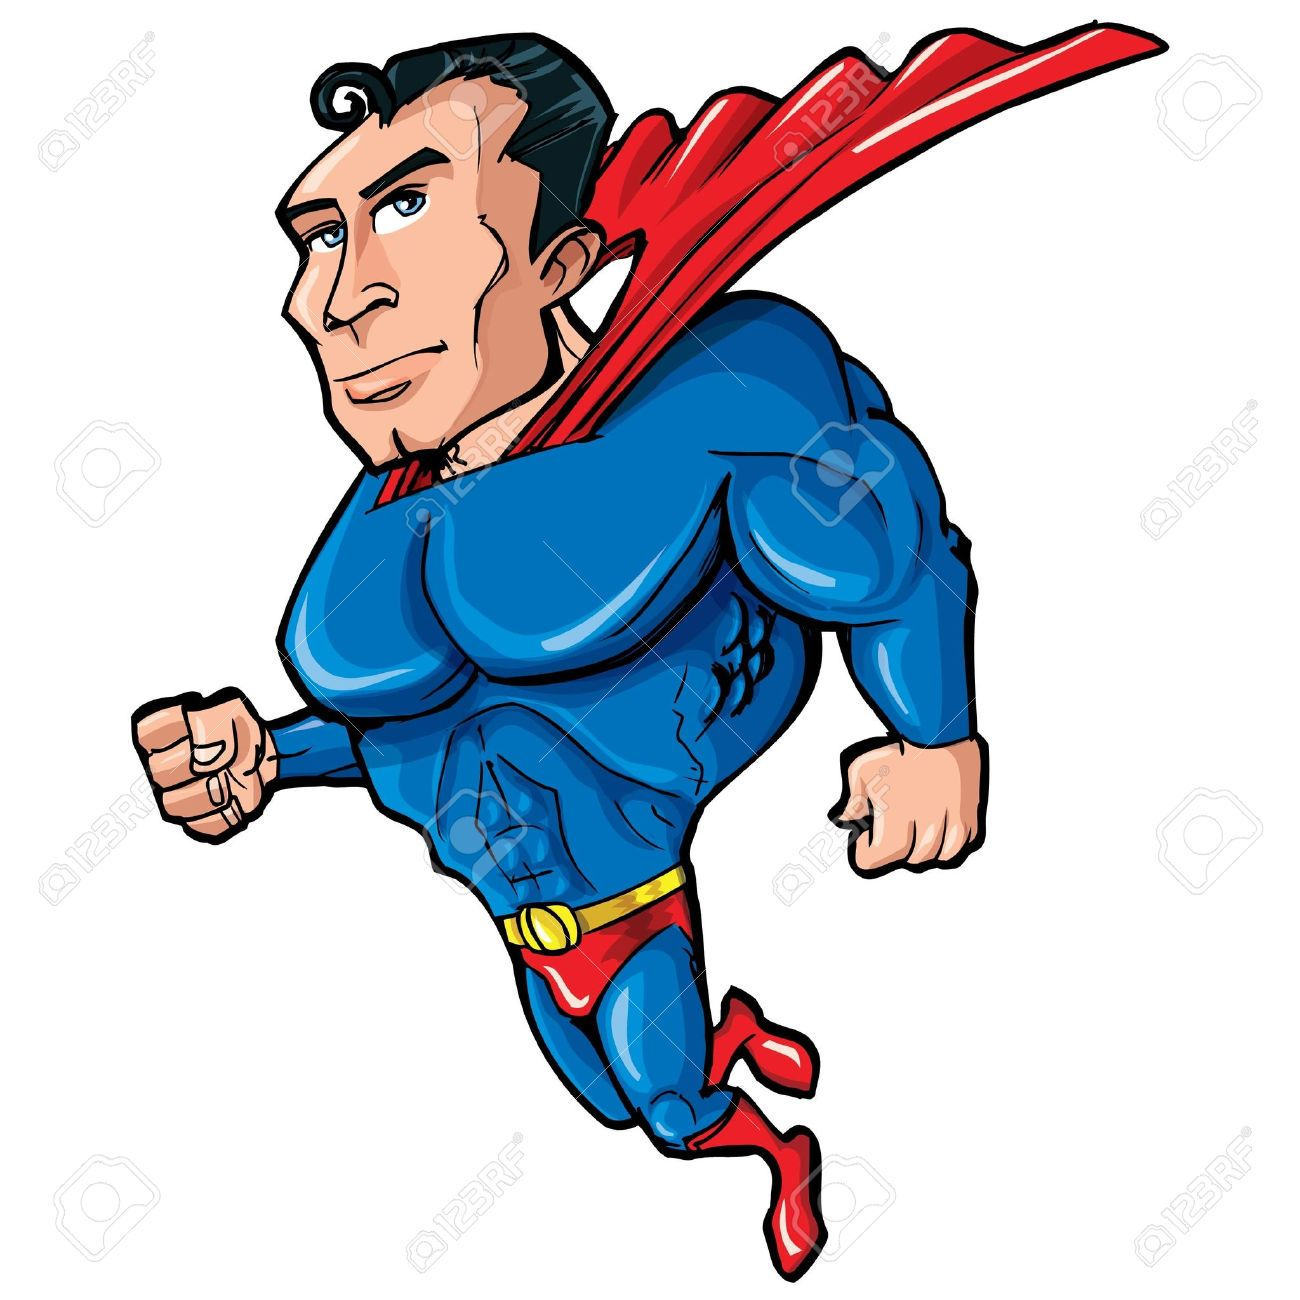 Superman body clipart library Cartoon Superman With Huge Chest. He Is Islotaed On White Royalty ... library